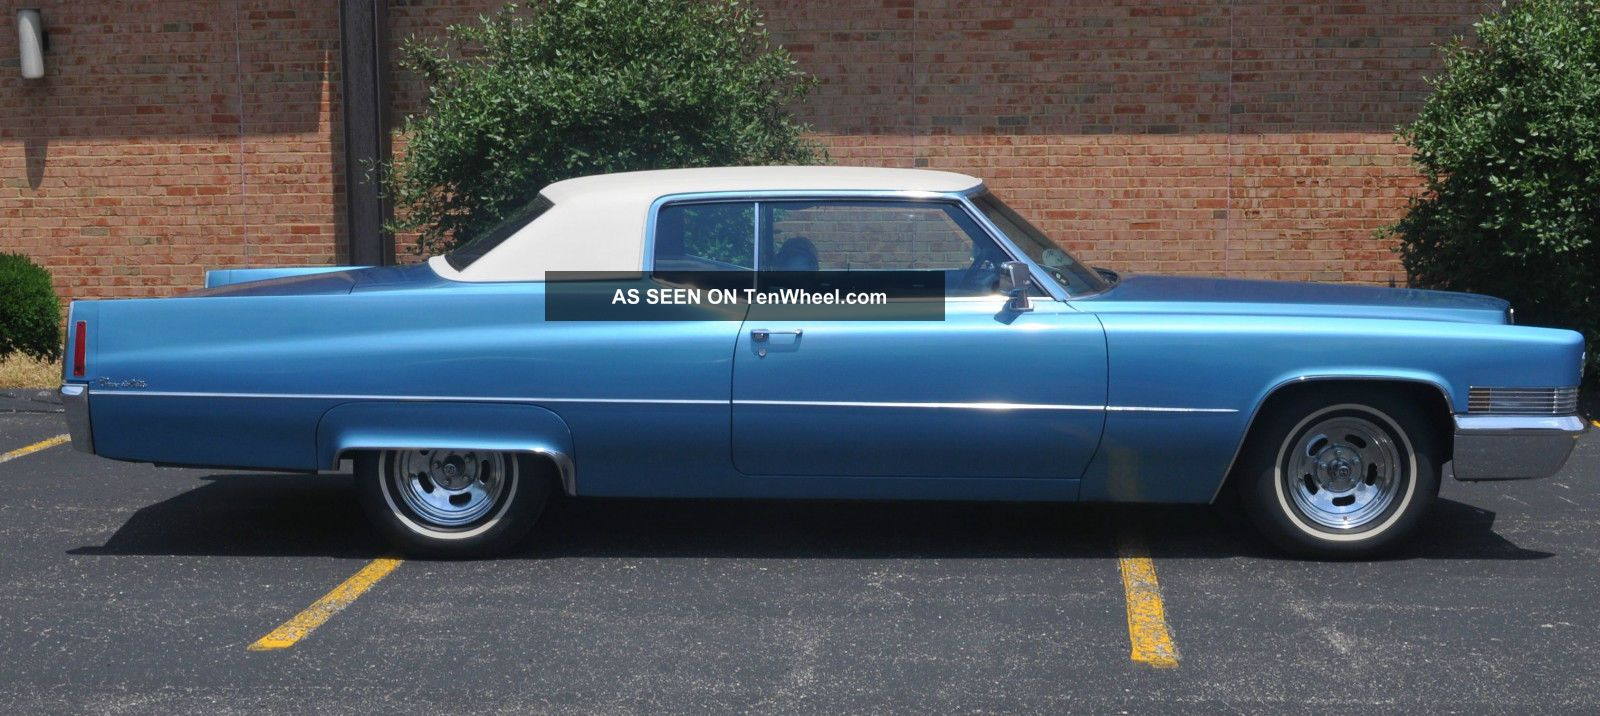 1970 Coup Deville Cadillac,  Beautuful Body,  Great Interior,  Fully Loaded DeVille photo